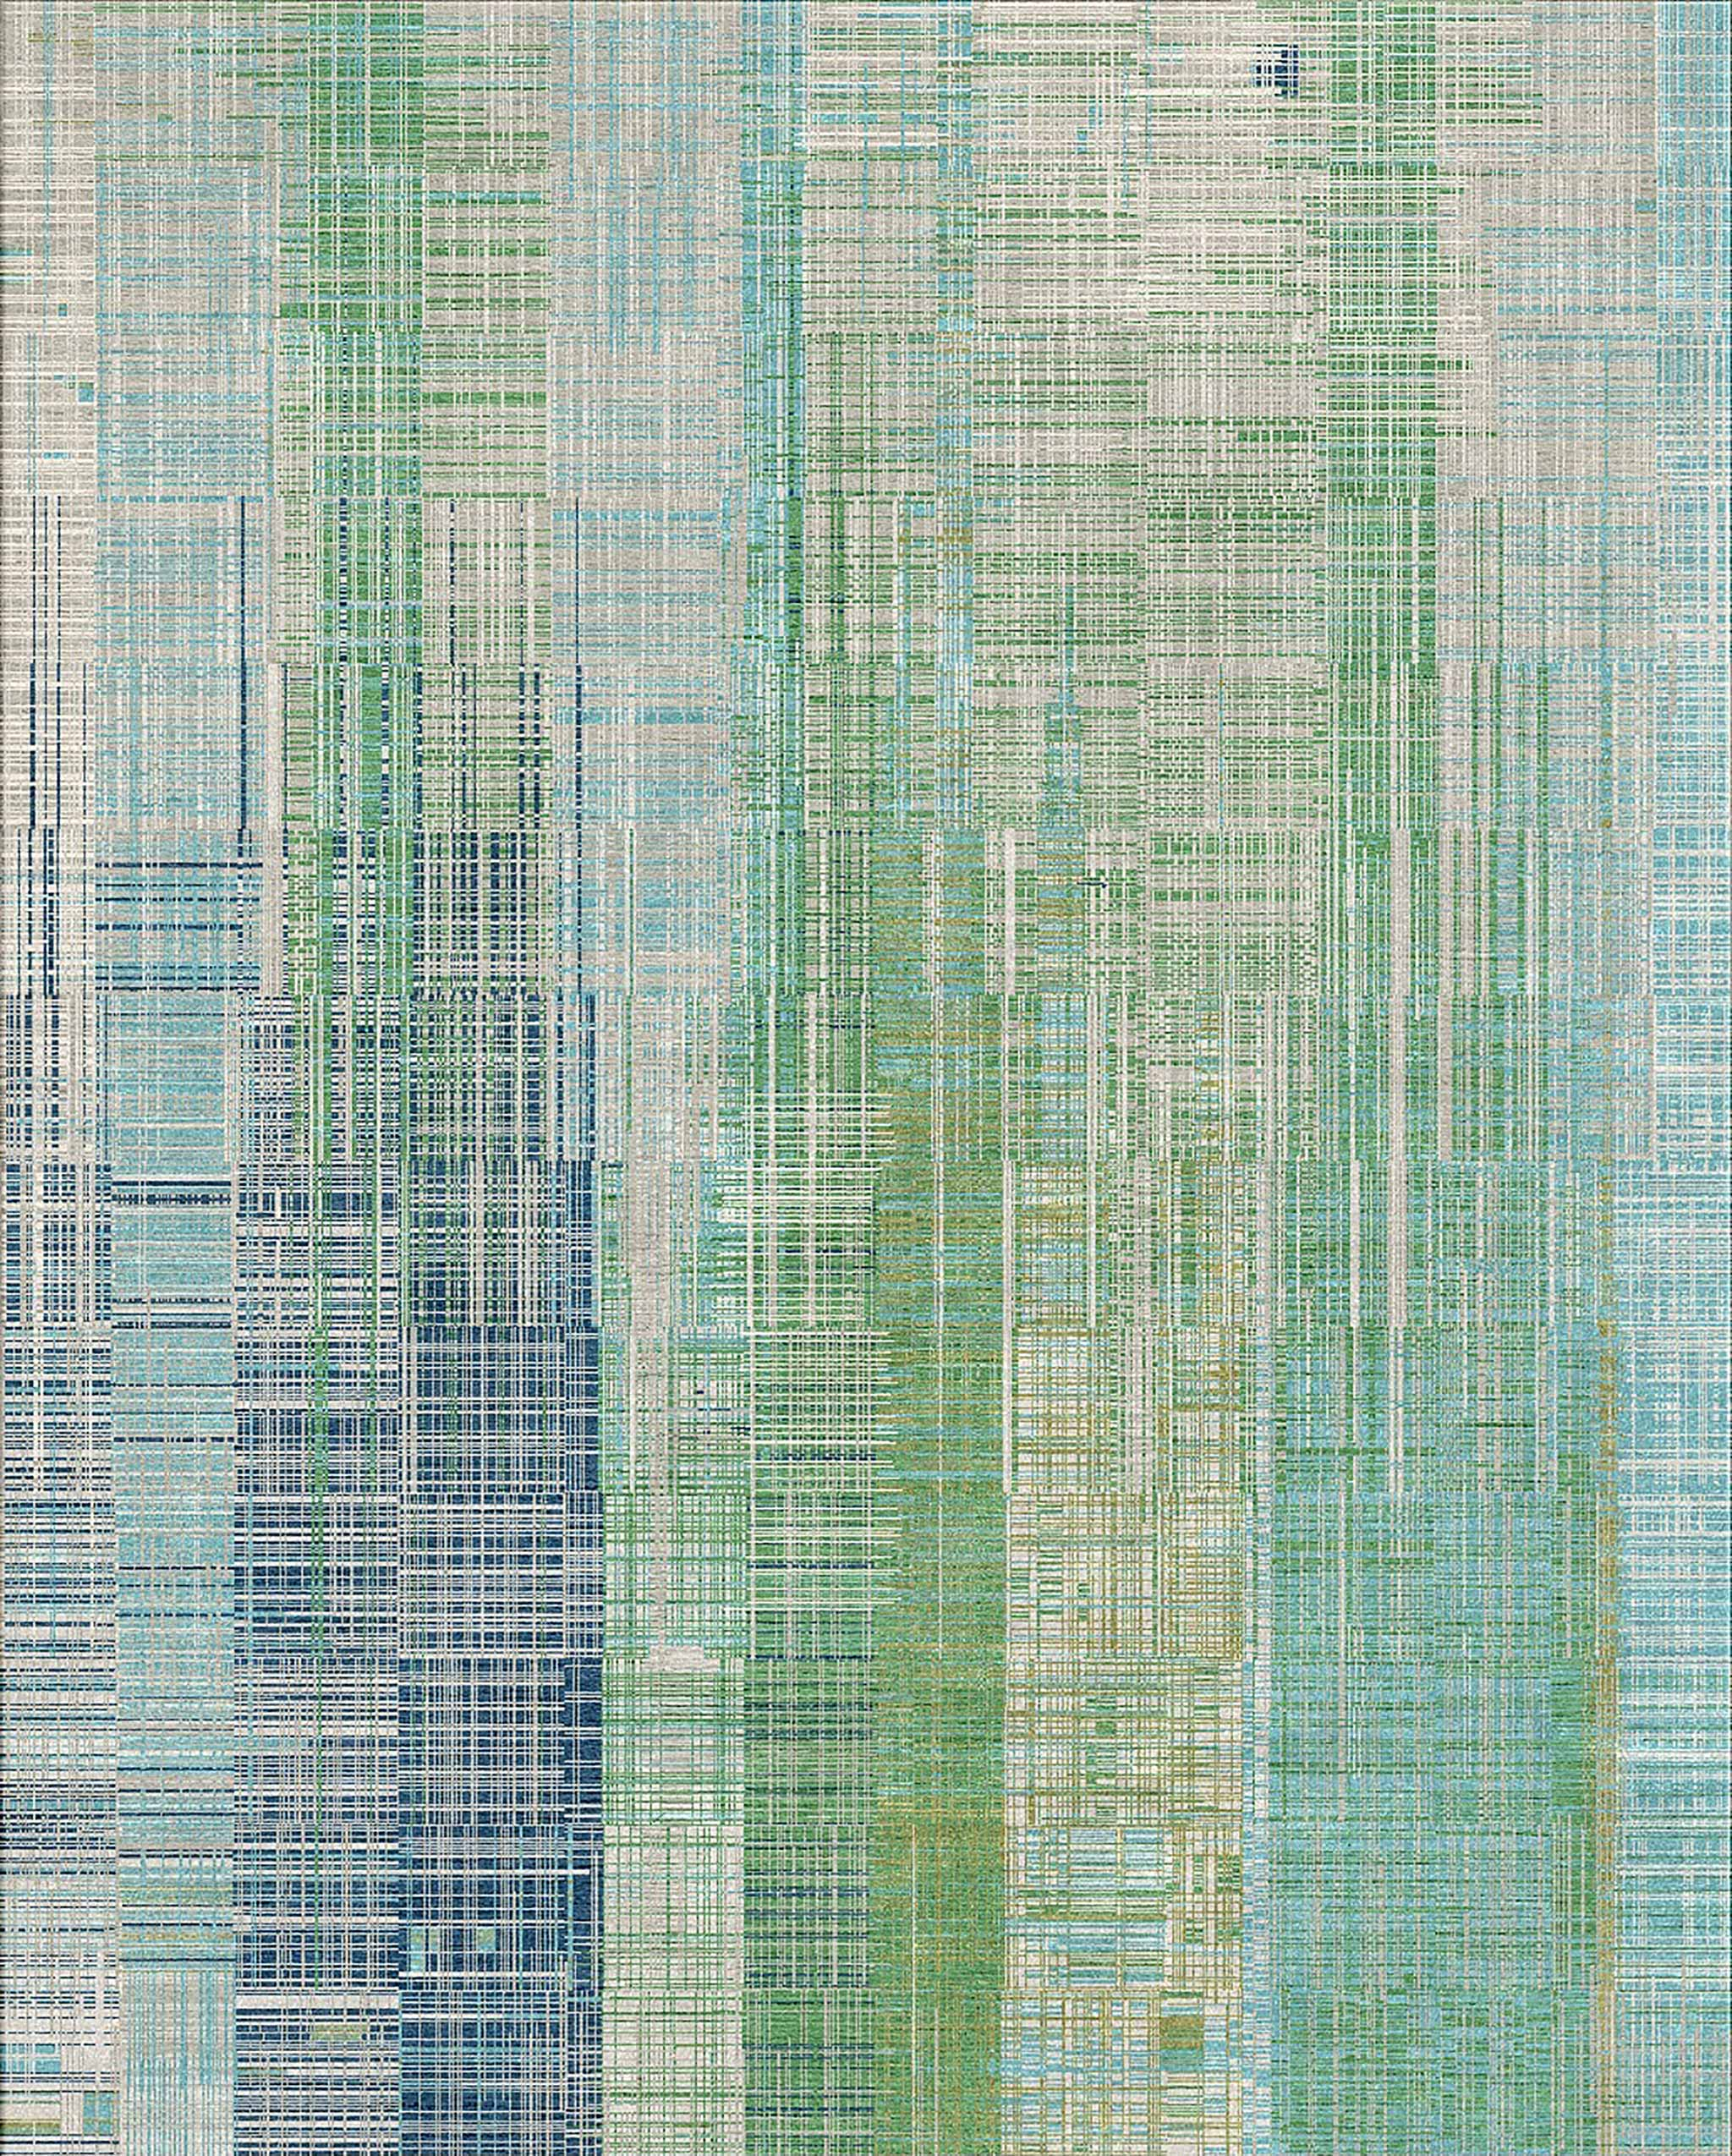 Un-Official Finalist, Best Modern Collection: Unstring by Kavi, Jaipur Rugs - www.jaipurrugsco.com | Image courtesy of Jaipur Rugs/Domotex.